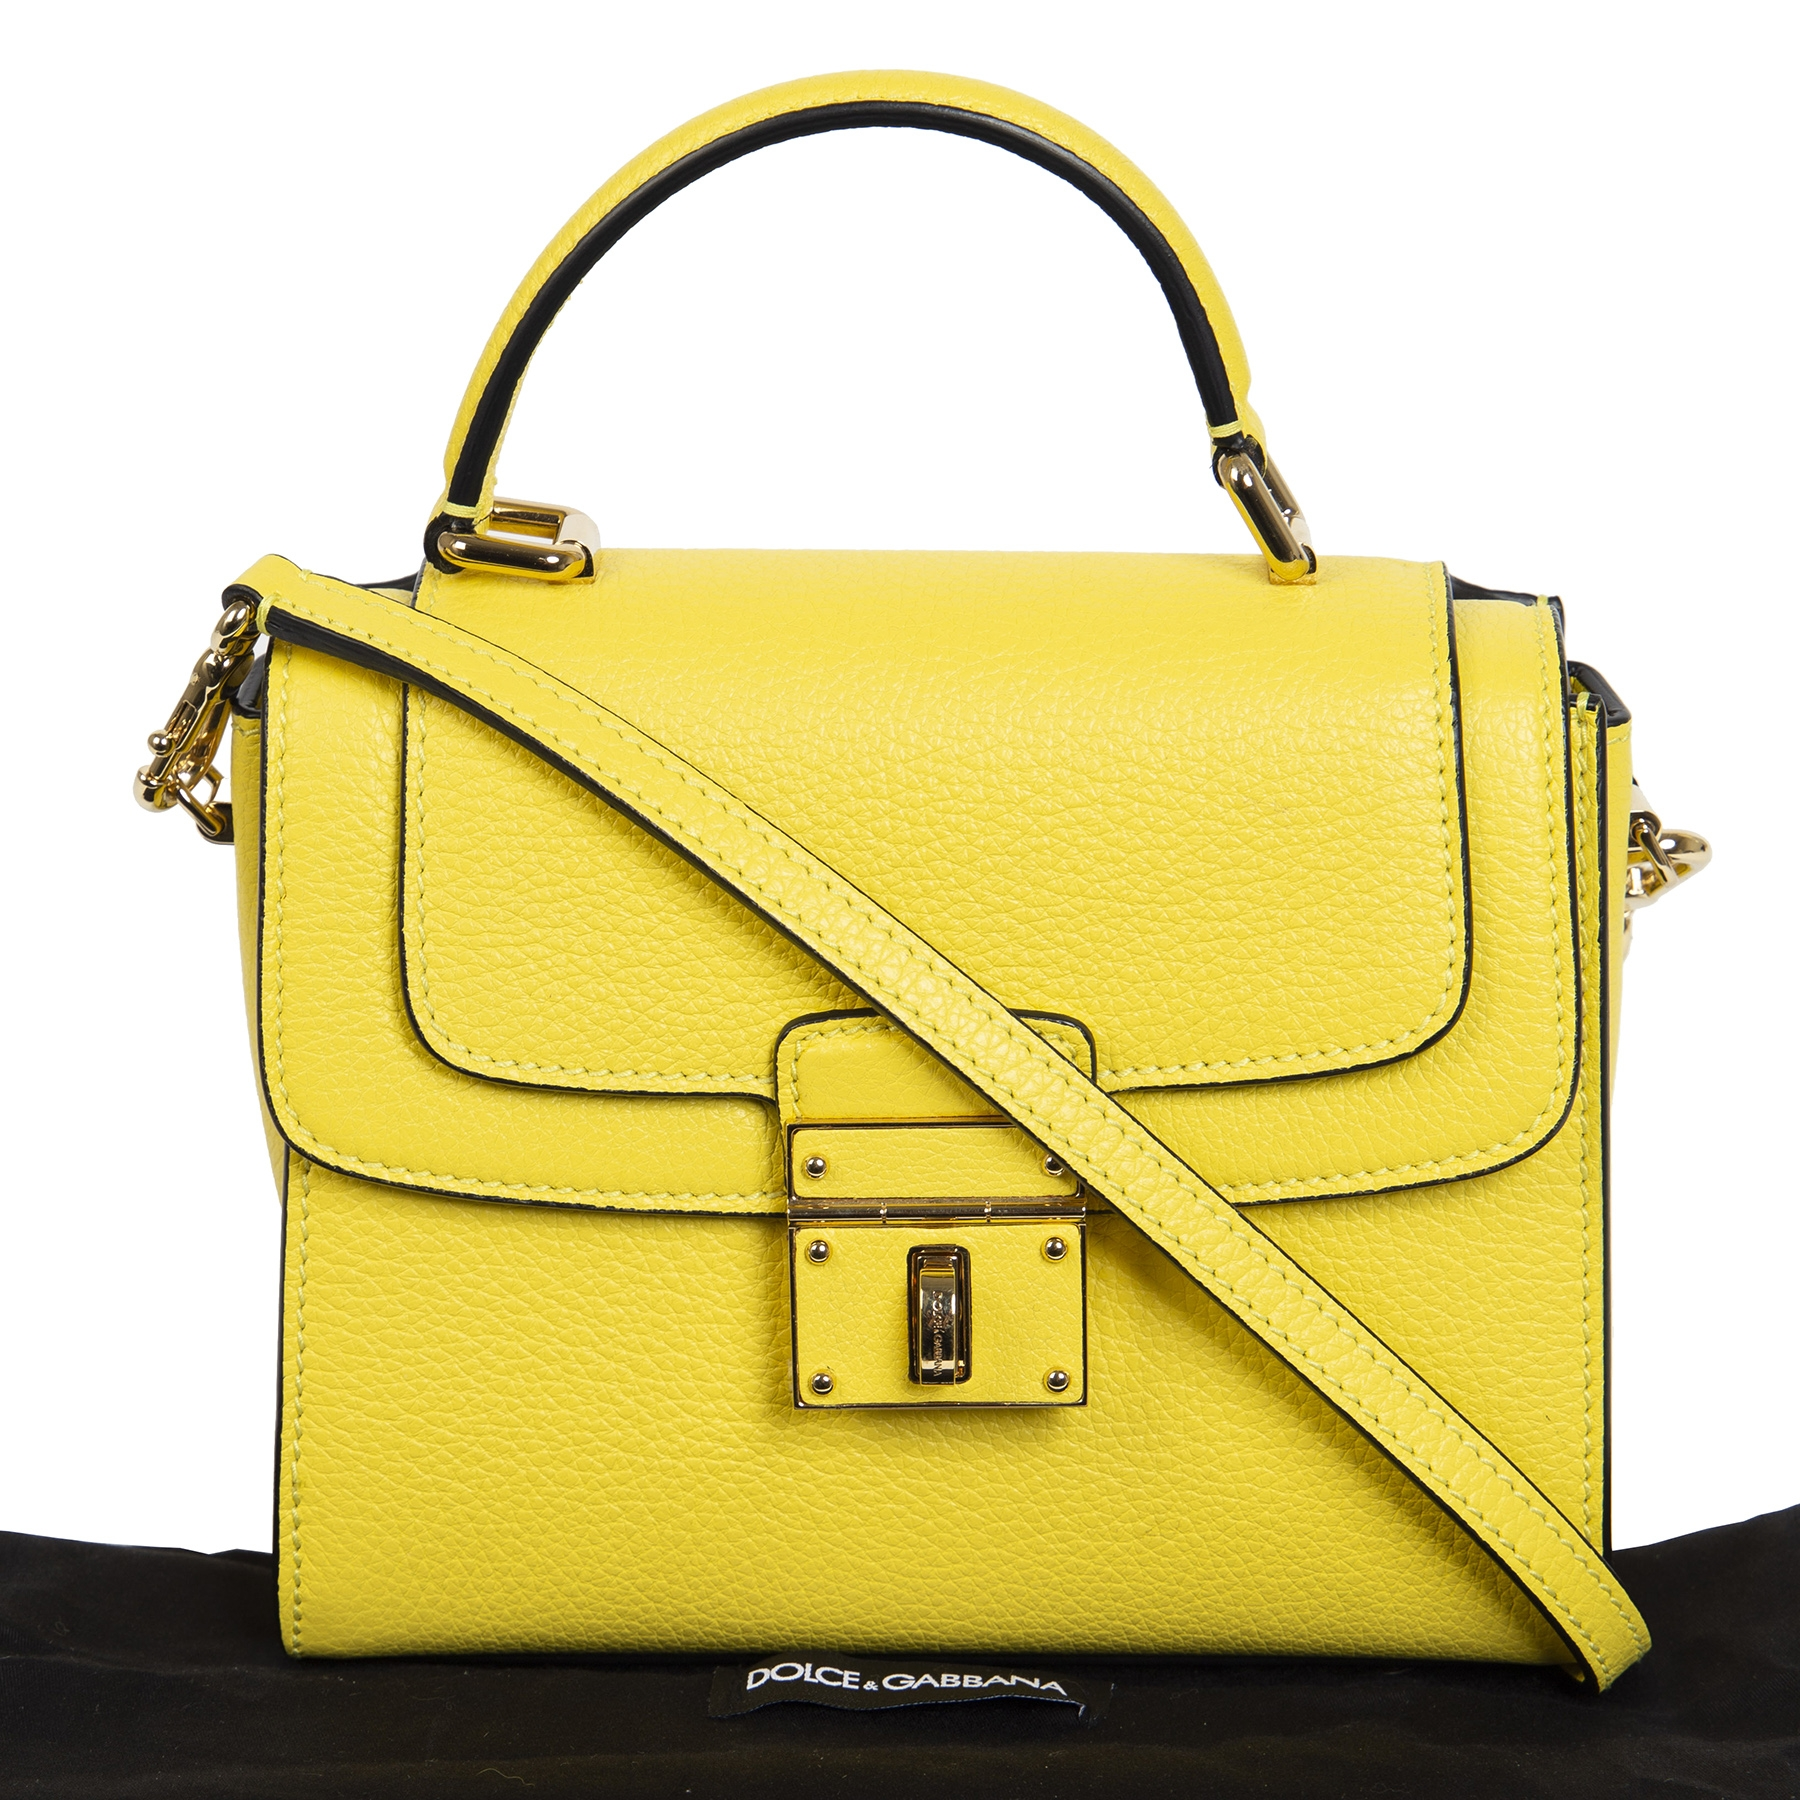 Dolce & Gabbana Altezza Lemon Yellow Bag for the best price online at Labellov